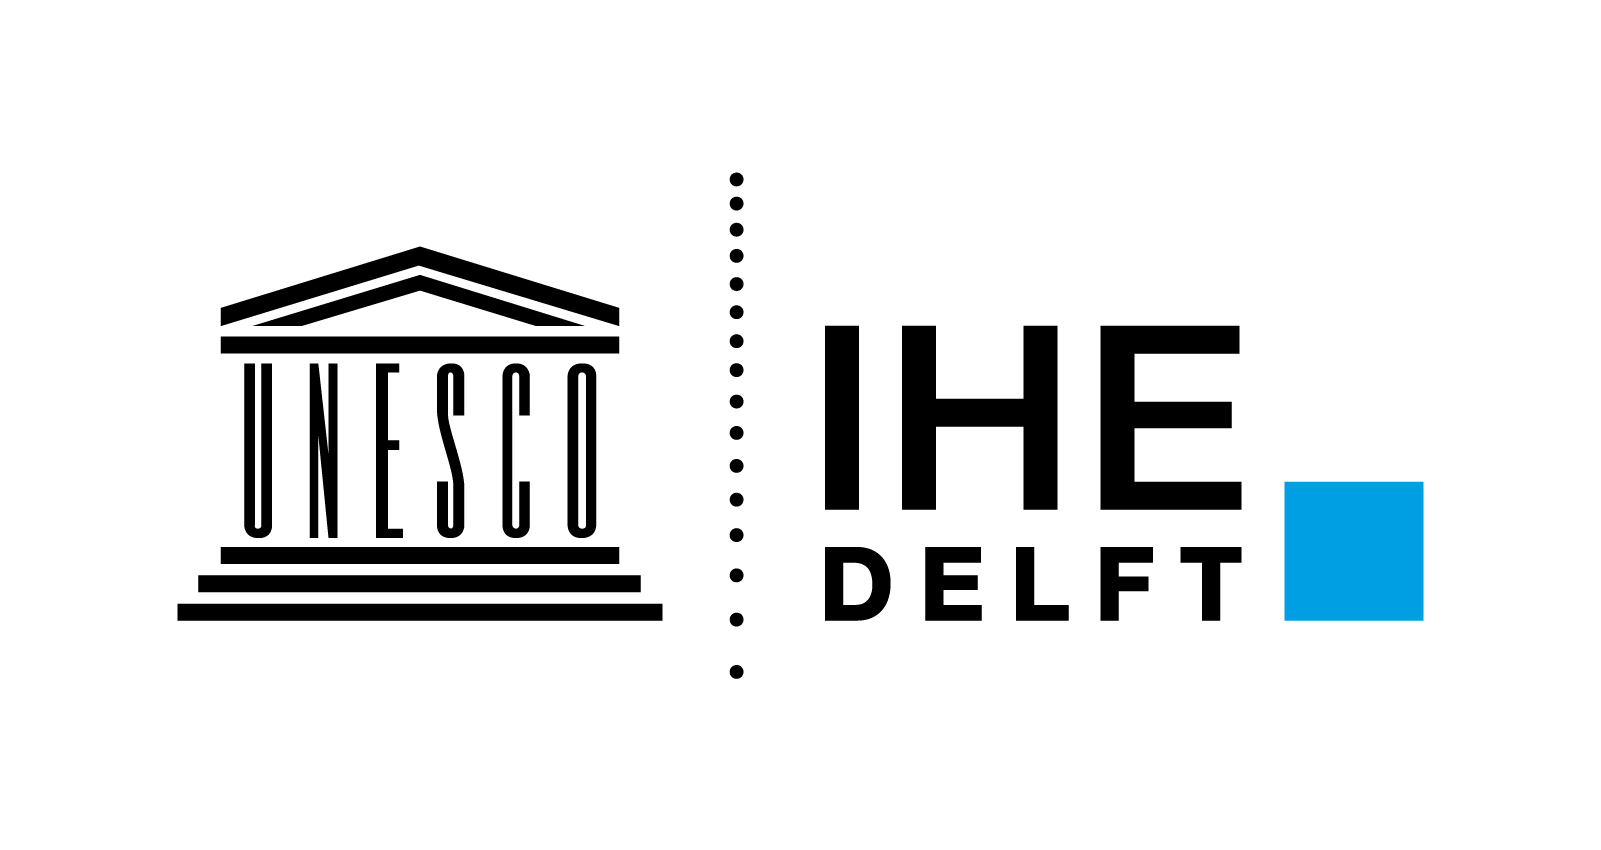 IHE Delft is a present partner